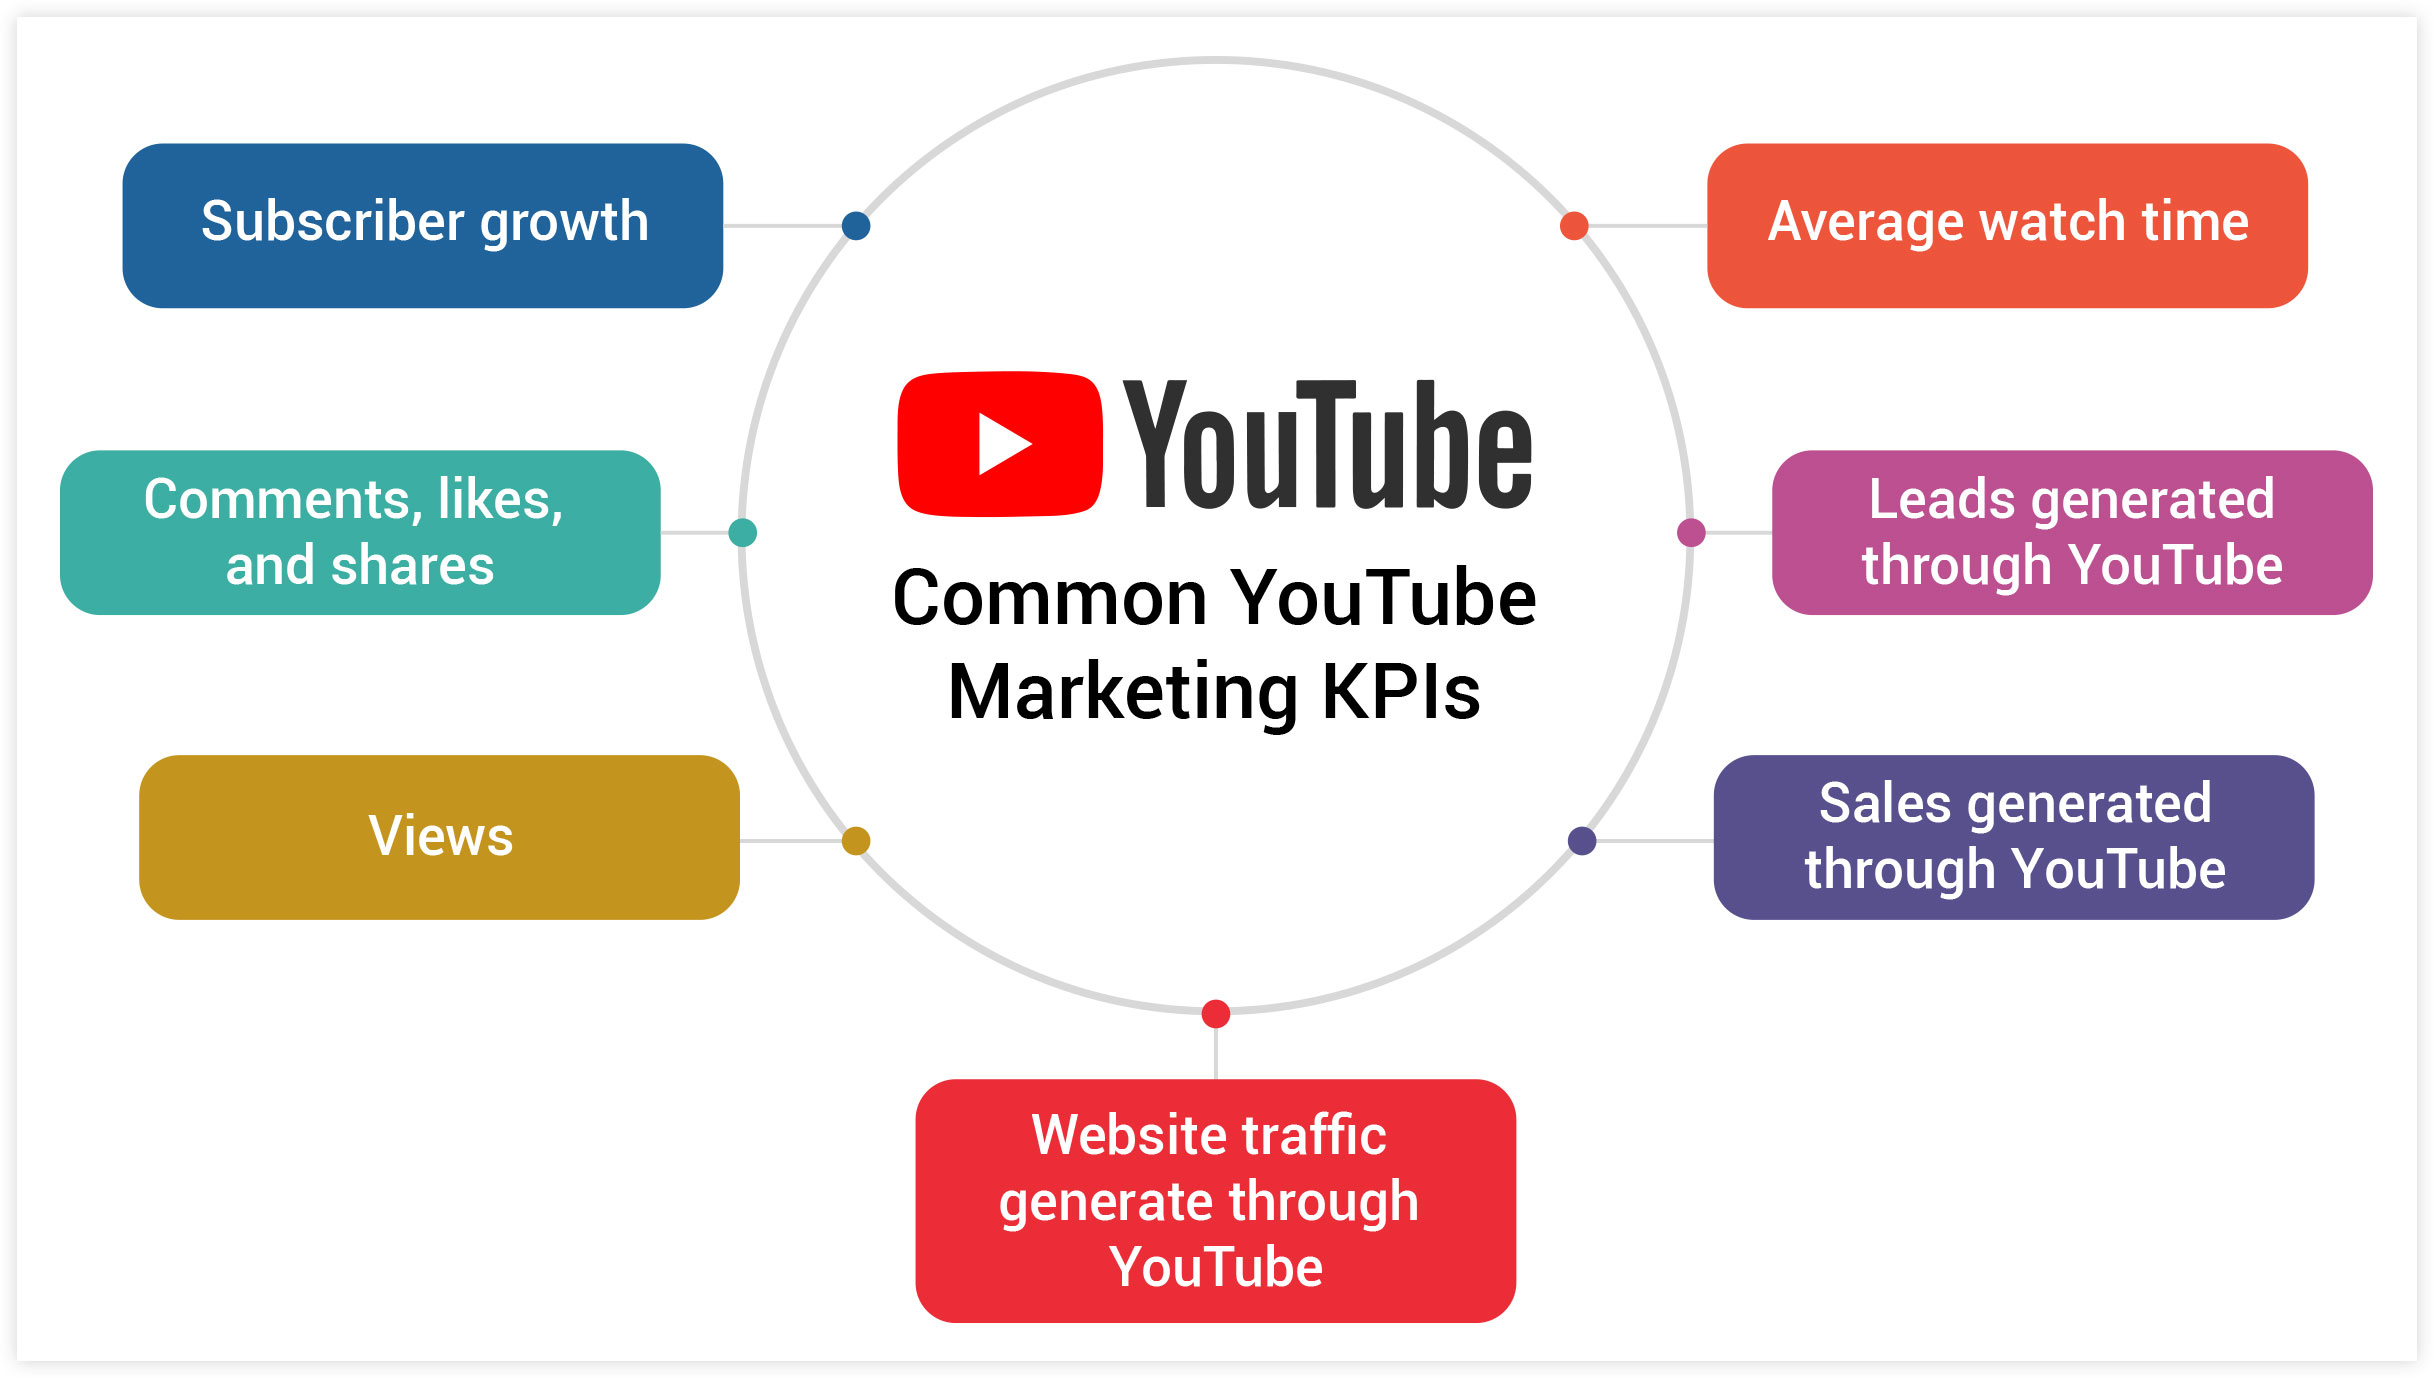 Common YouTube Marketing KPIs